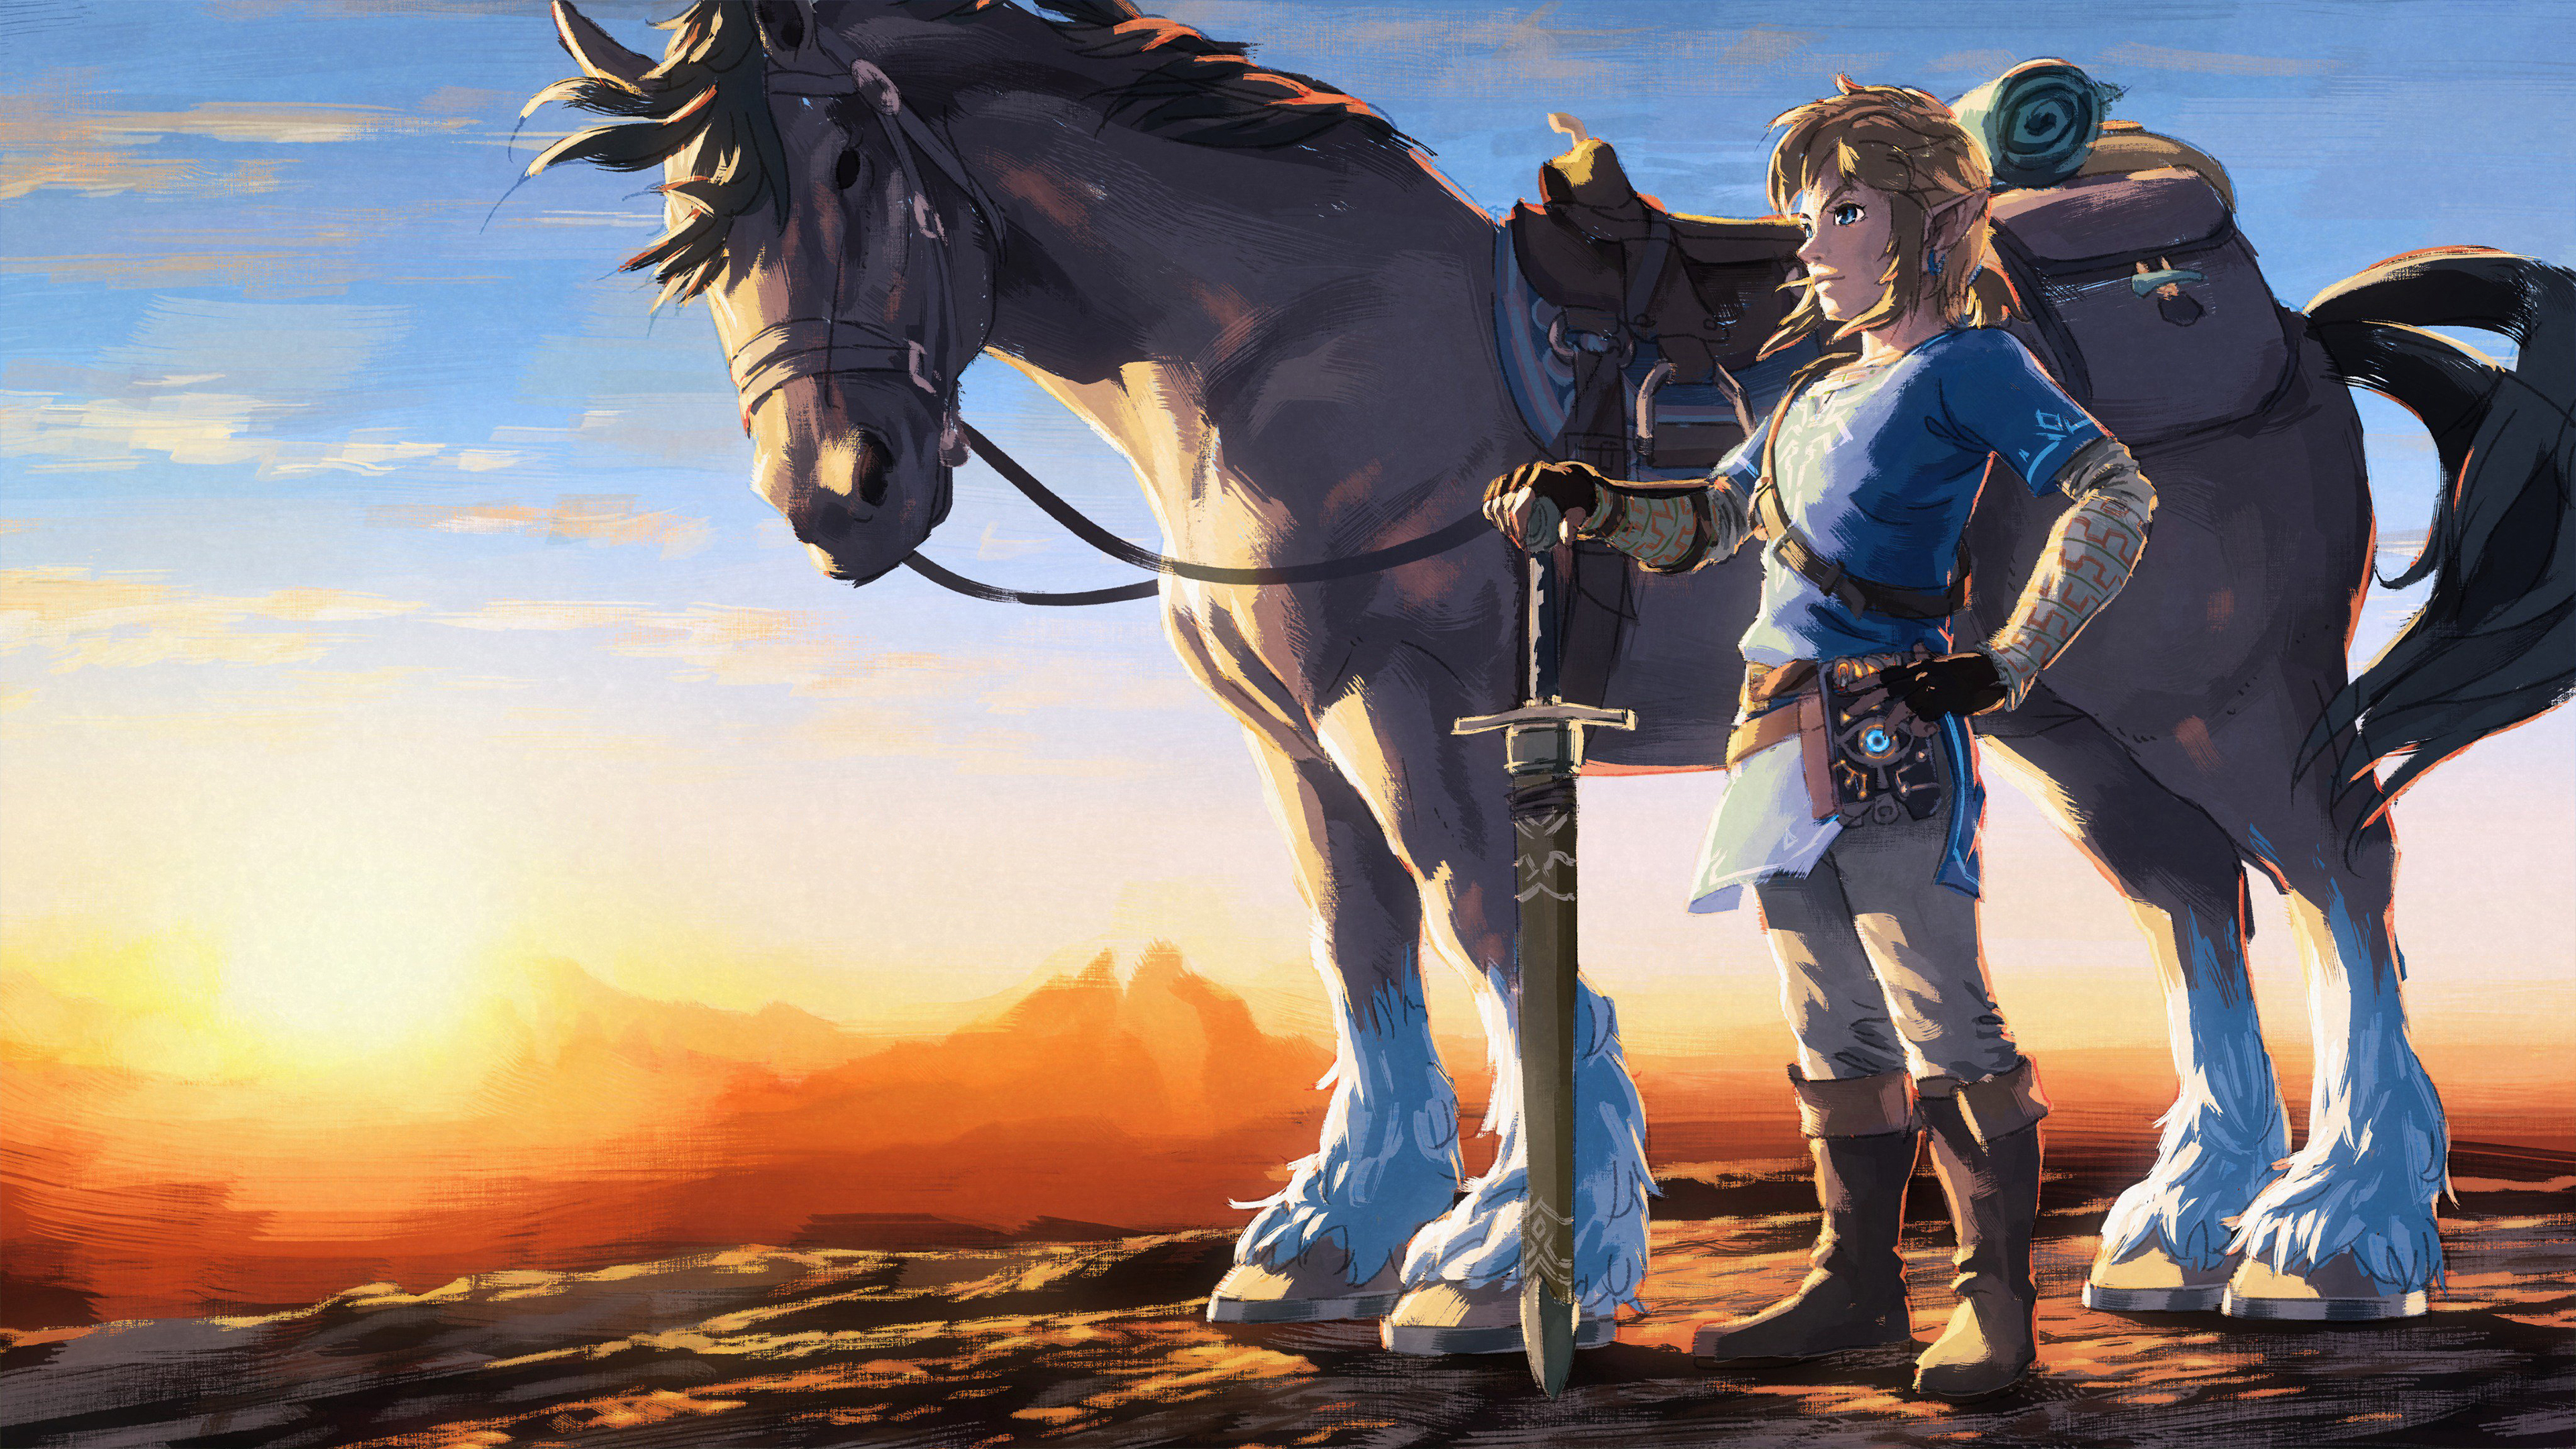 3840x2160 1 Year Anniversary The Legend Of Zelda Breath Of The